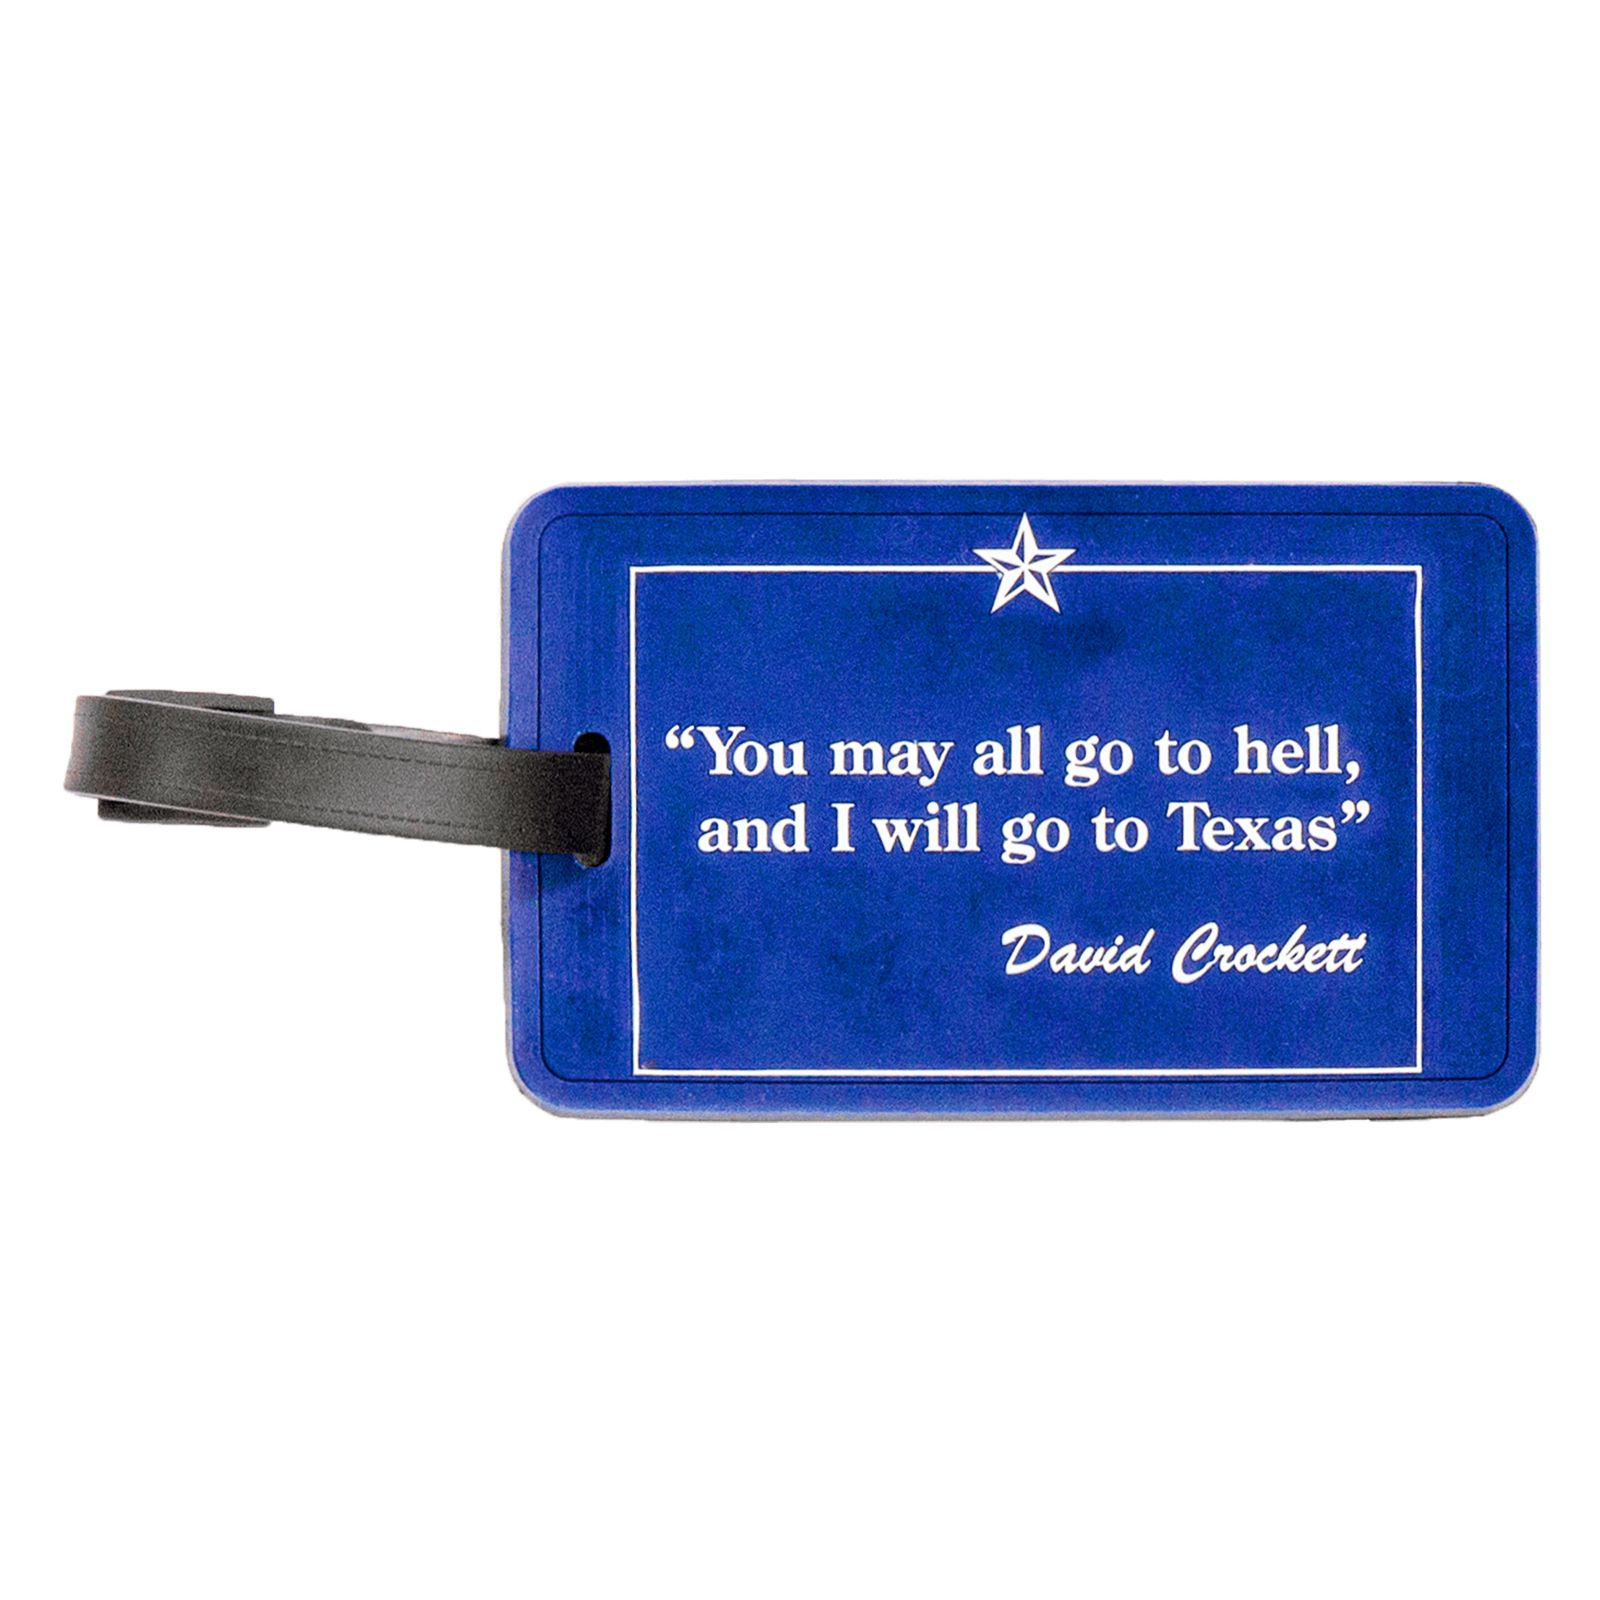 Davy Crockett Quote Luggage Tag